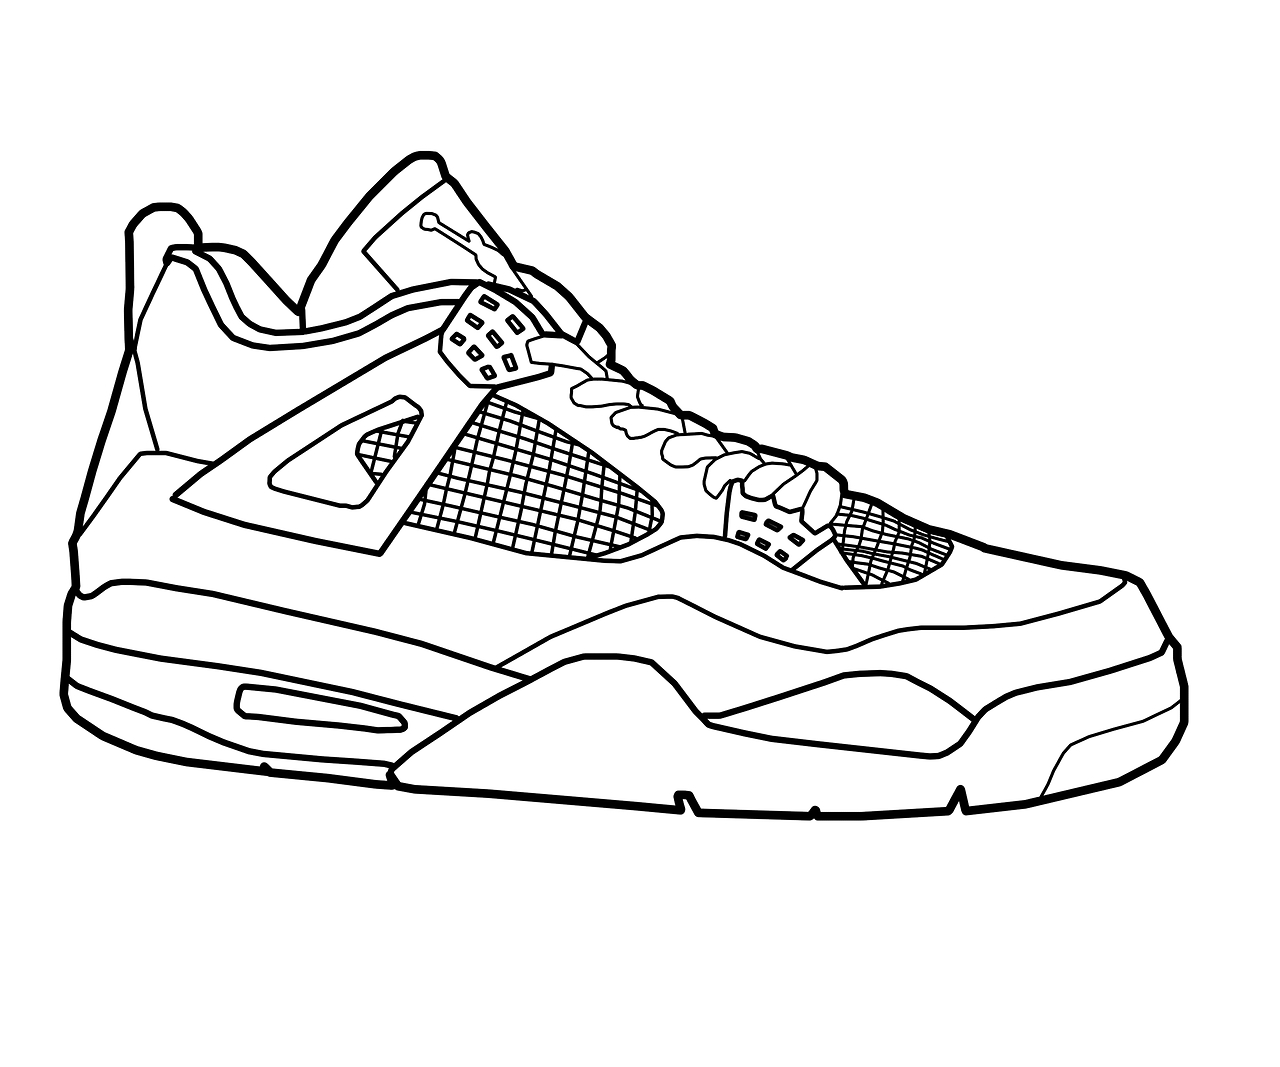 jordan coloring pages - jordan shoes coloring page